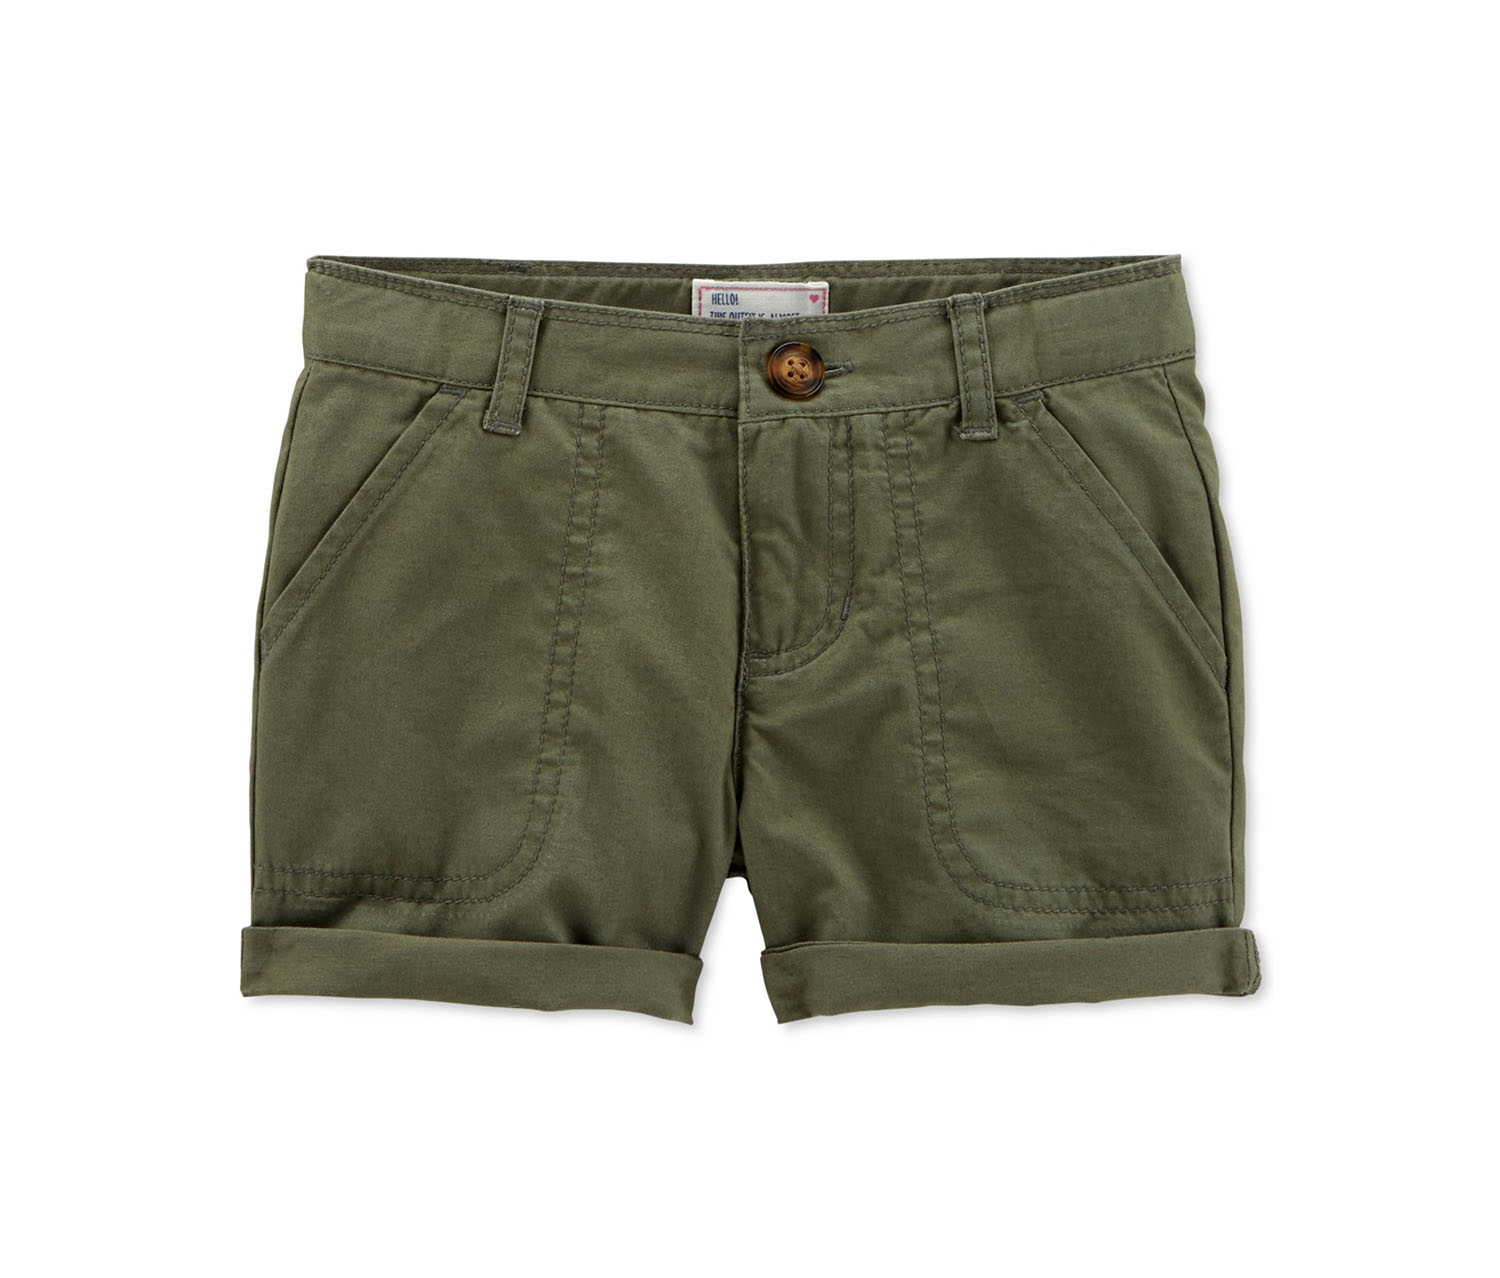 3abecf6922 Shop Carters Carter's Girl's Chino Shorts Girls, Olive for Toddlers ...